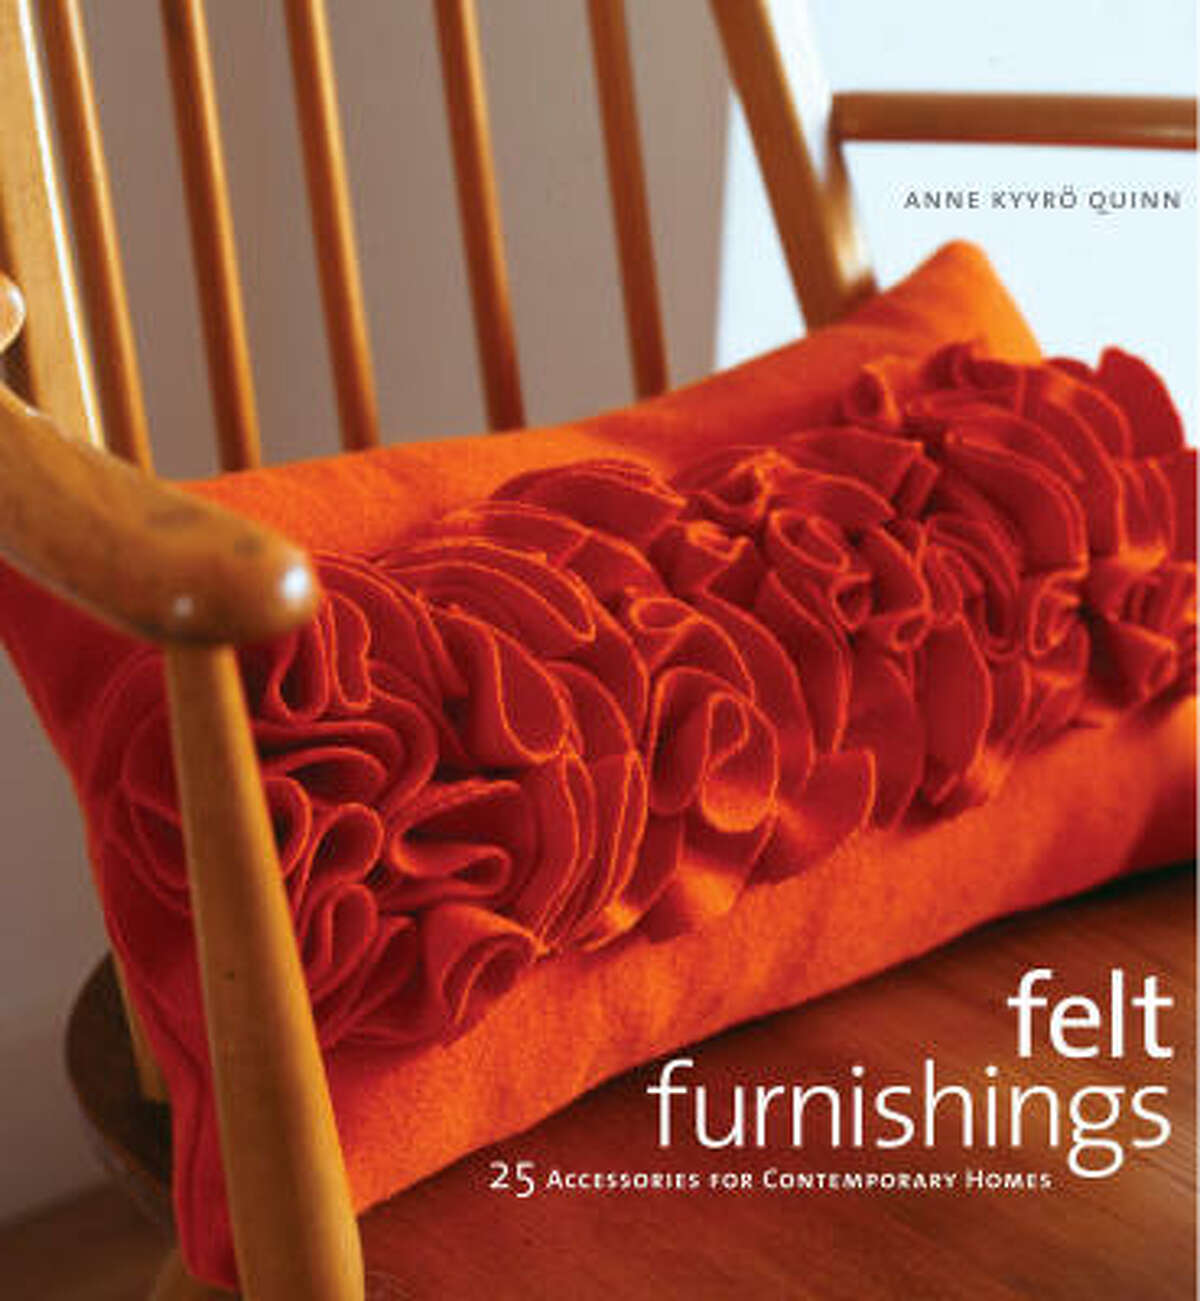 This project is from Felt Furnishings by Anne Kyyro Quinn (Potter Craft, $25).